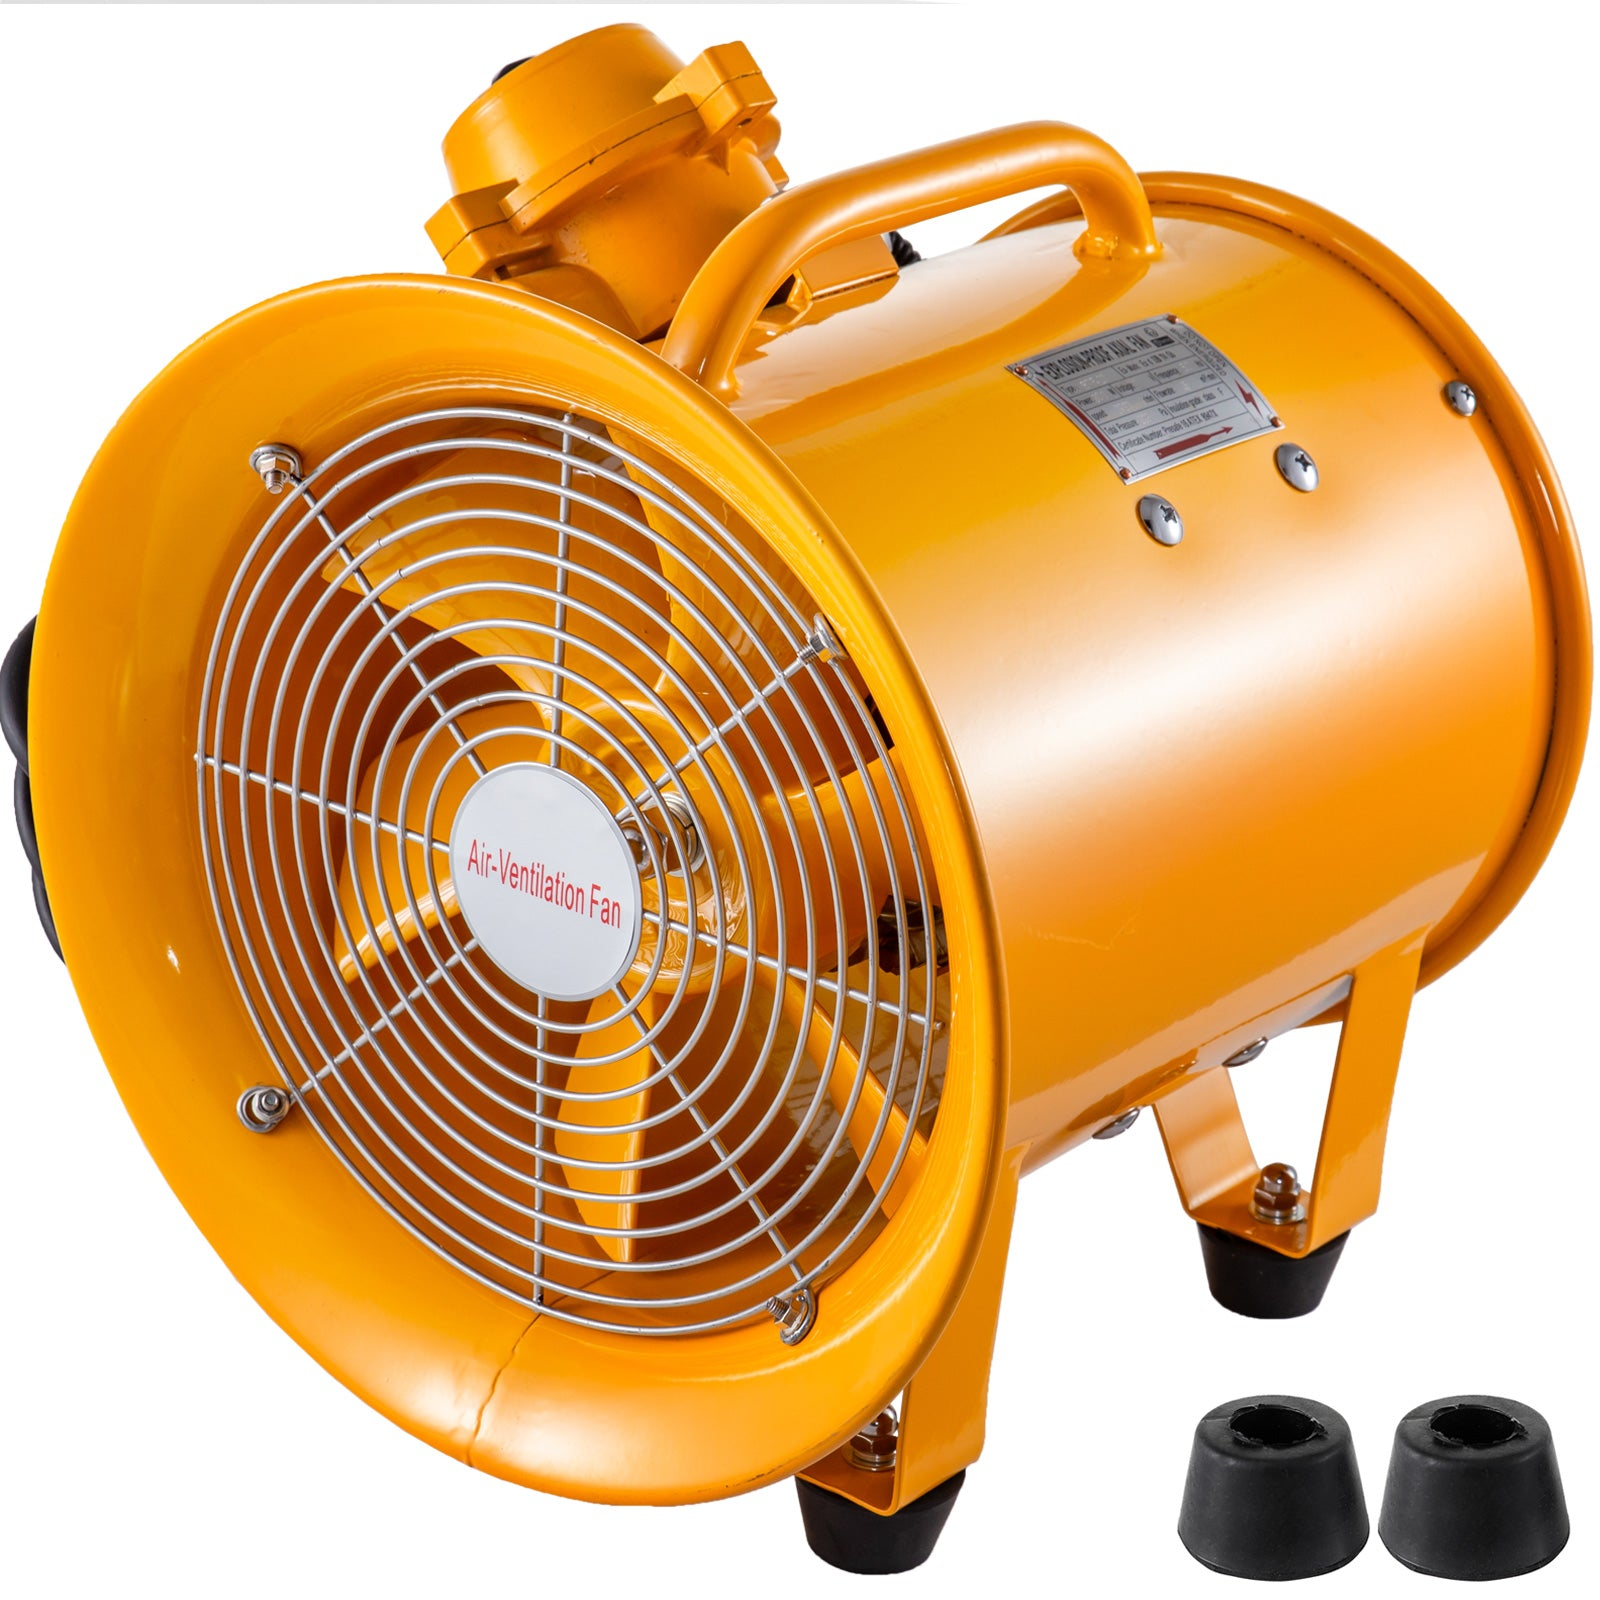 Atex Certifiedventilator Explosion Proof Axial Fan 10'' 110v Extractor Fan Blower